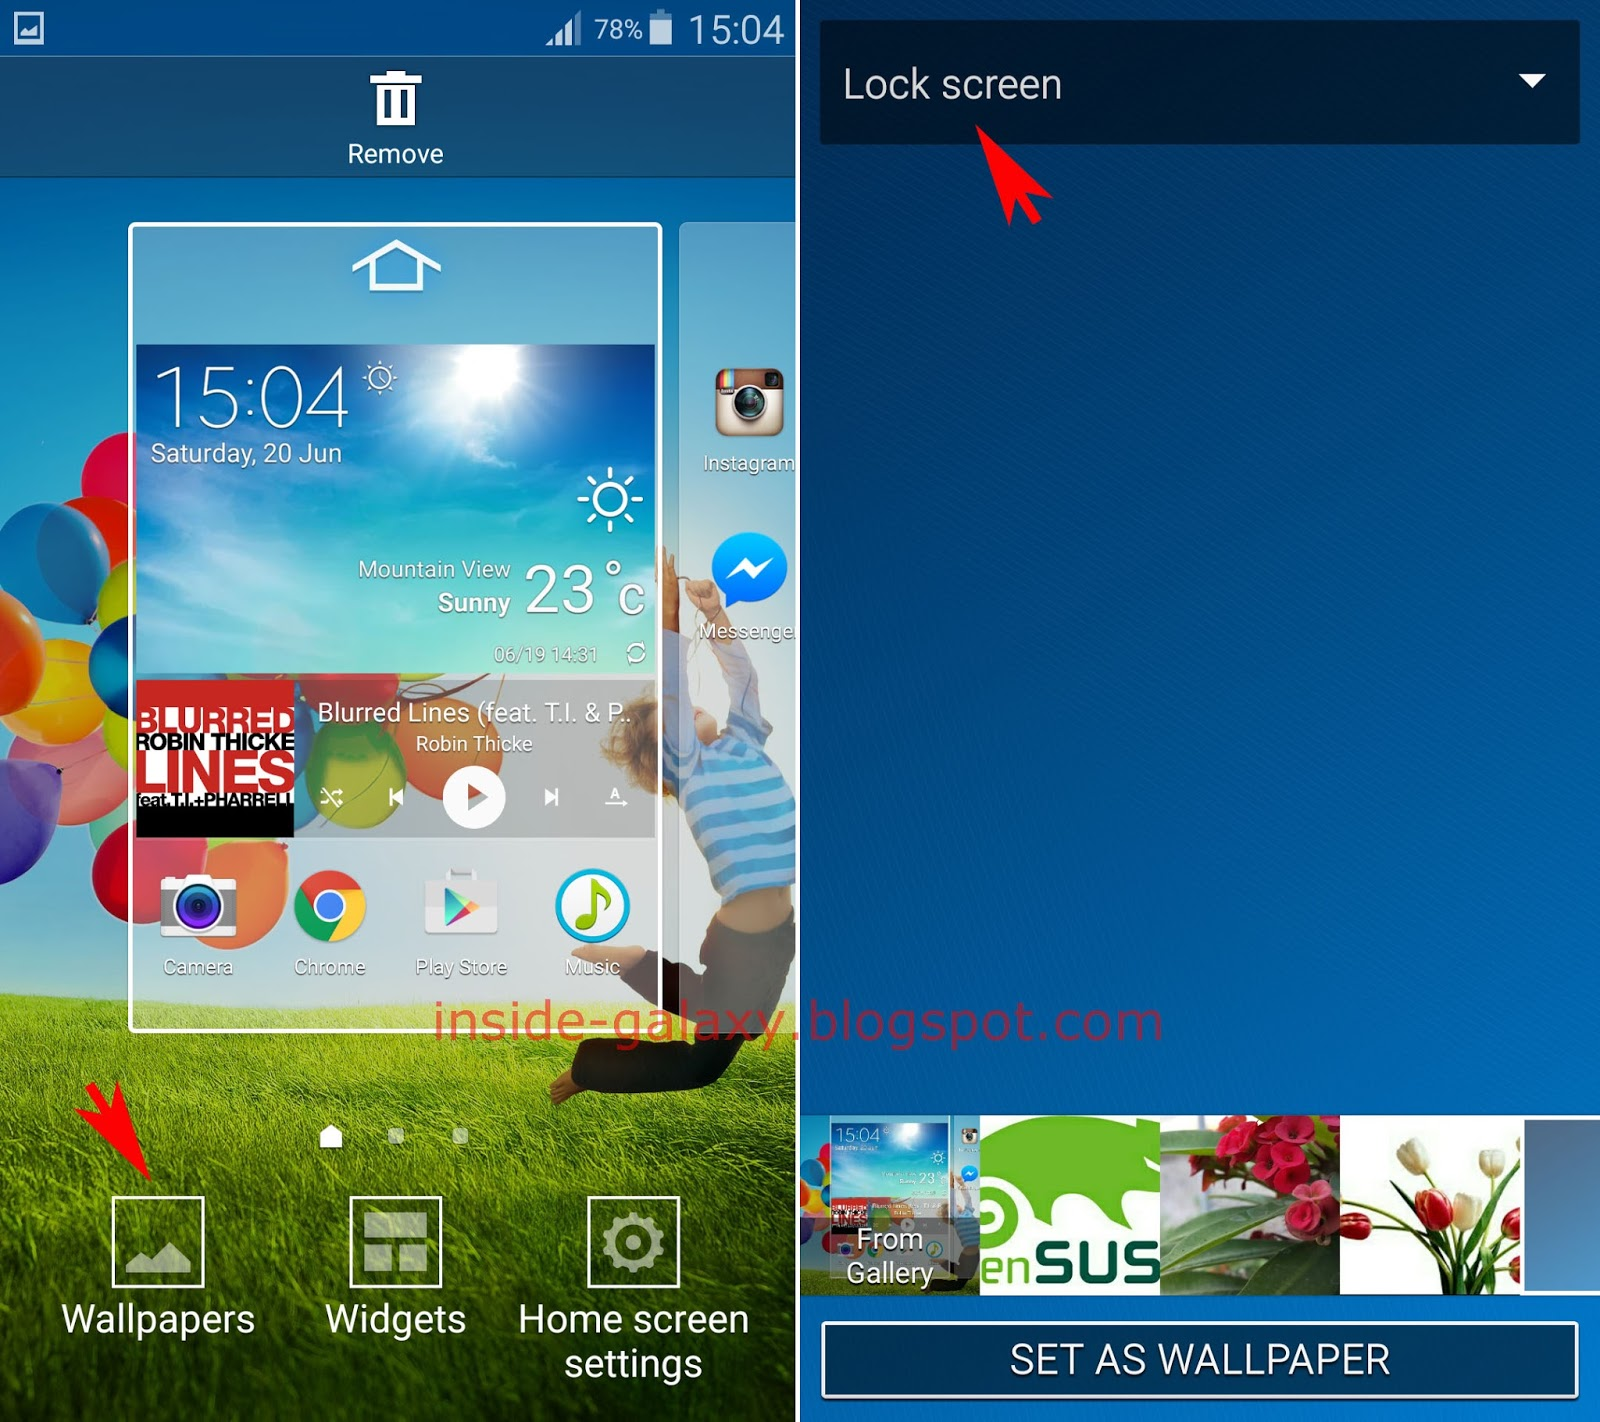 Inside Galaxy Samsung Galaxy S4 How To Change Lock Screen Wallpaper In Android 5 0 1 Lollipop